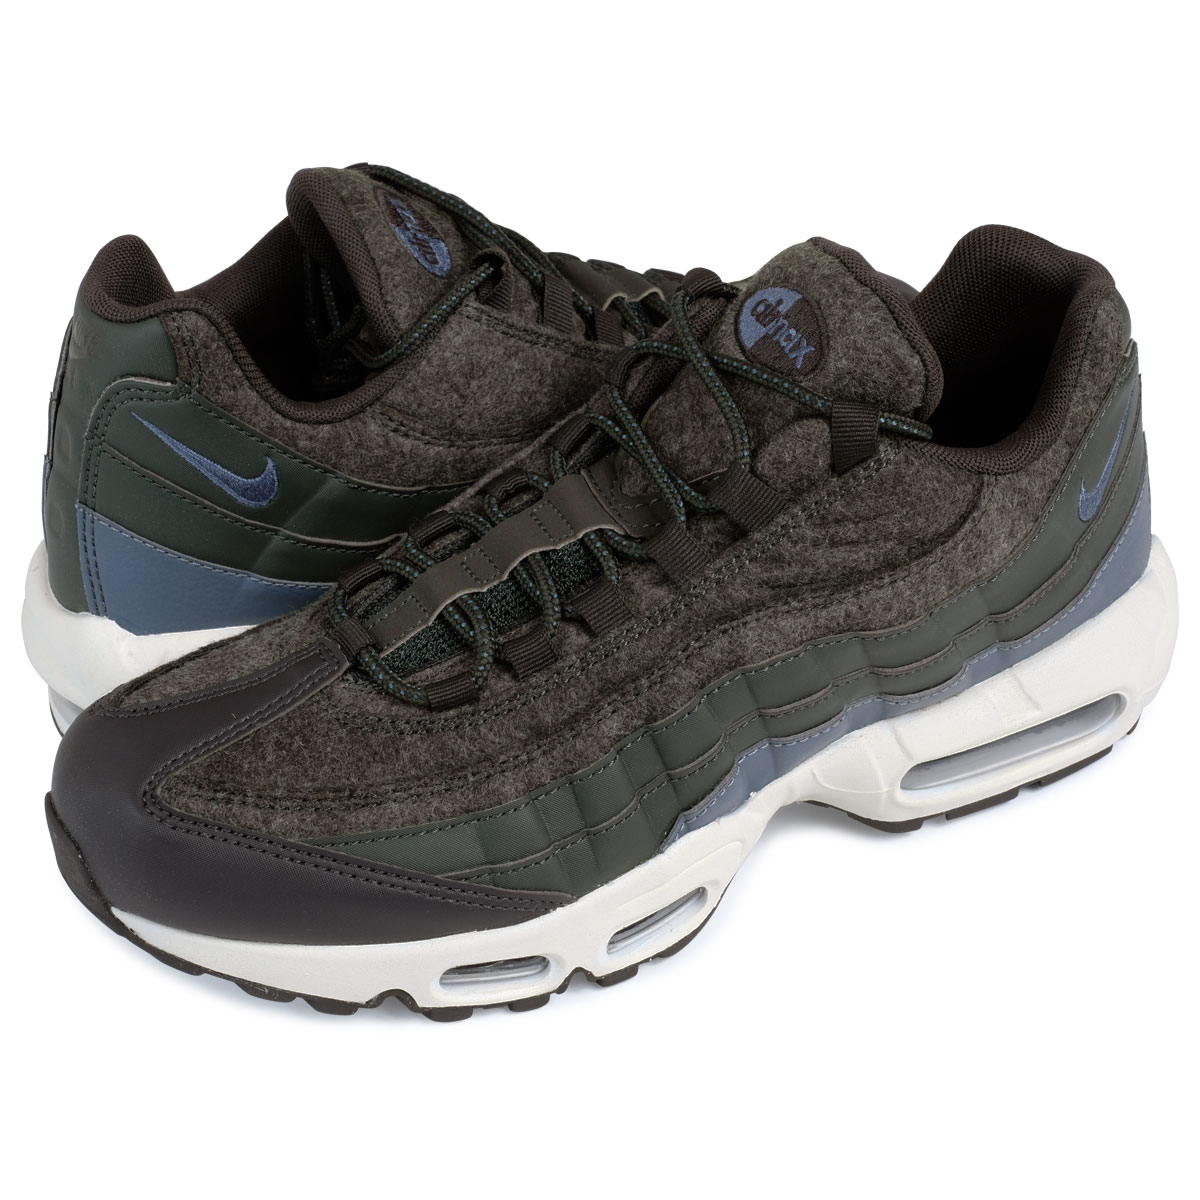 Nike Air Max 97 GS ( 921522 011 ) OVERKILL Berlin